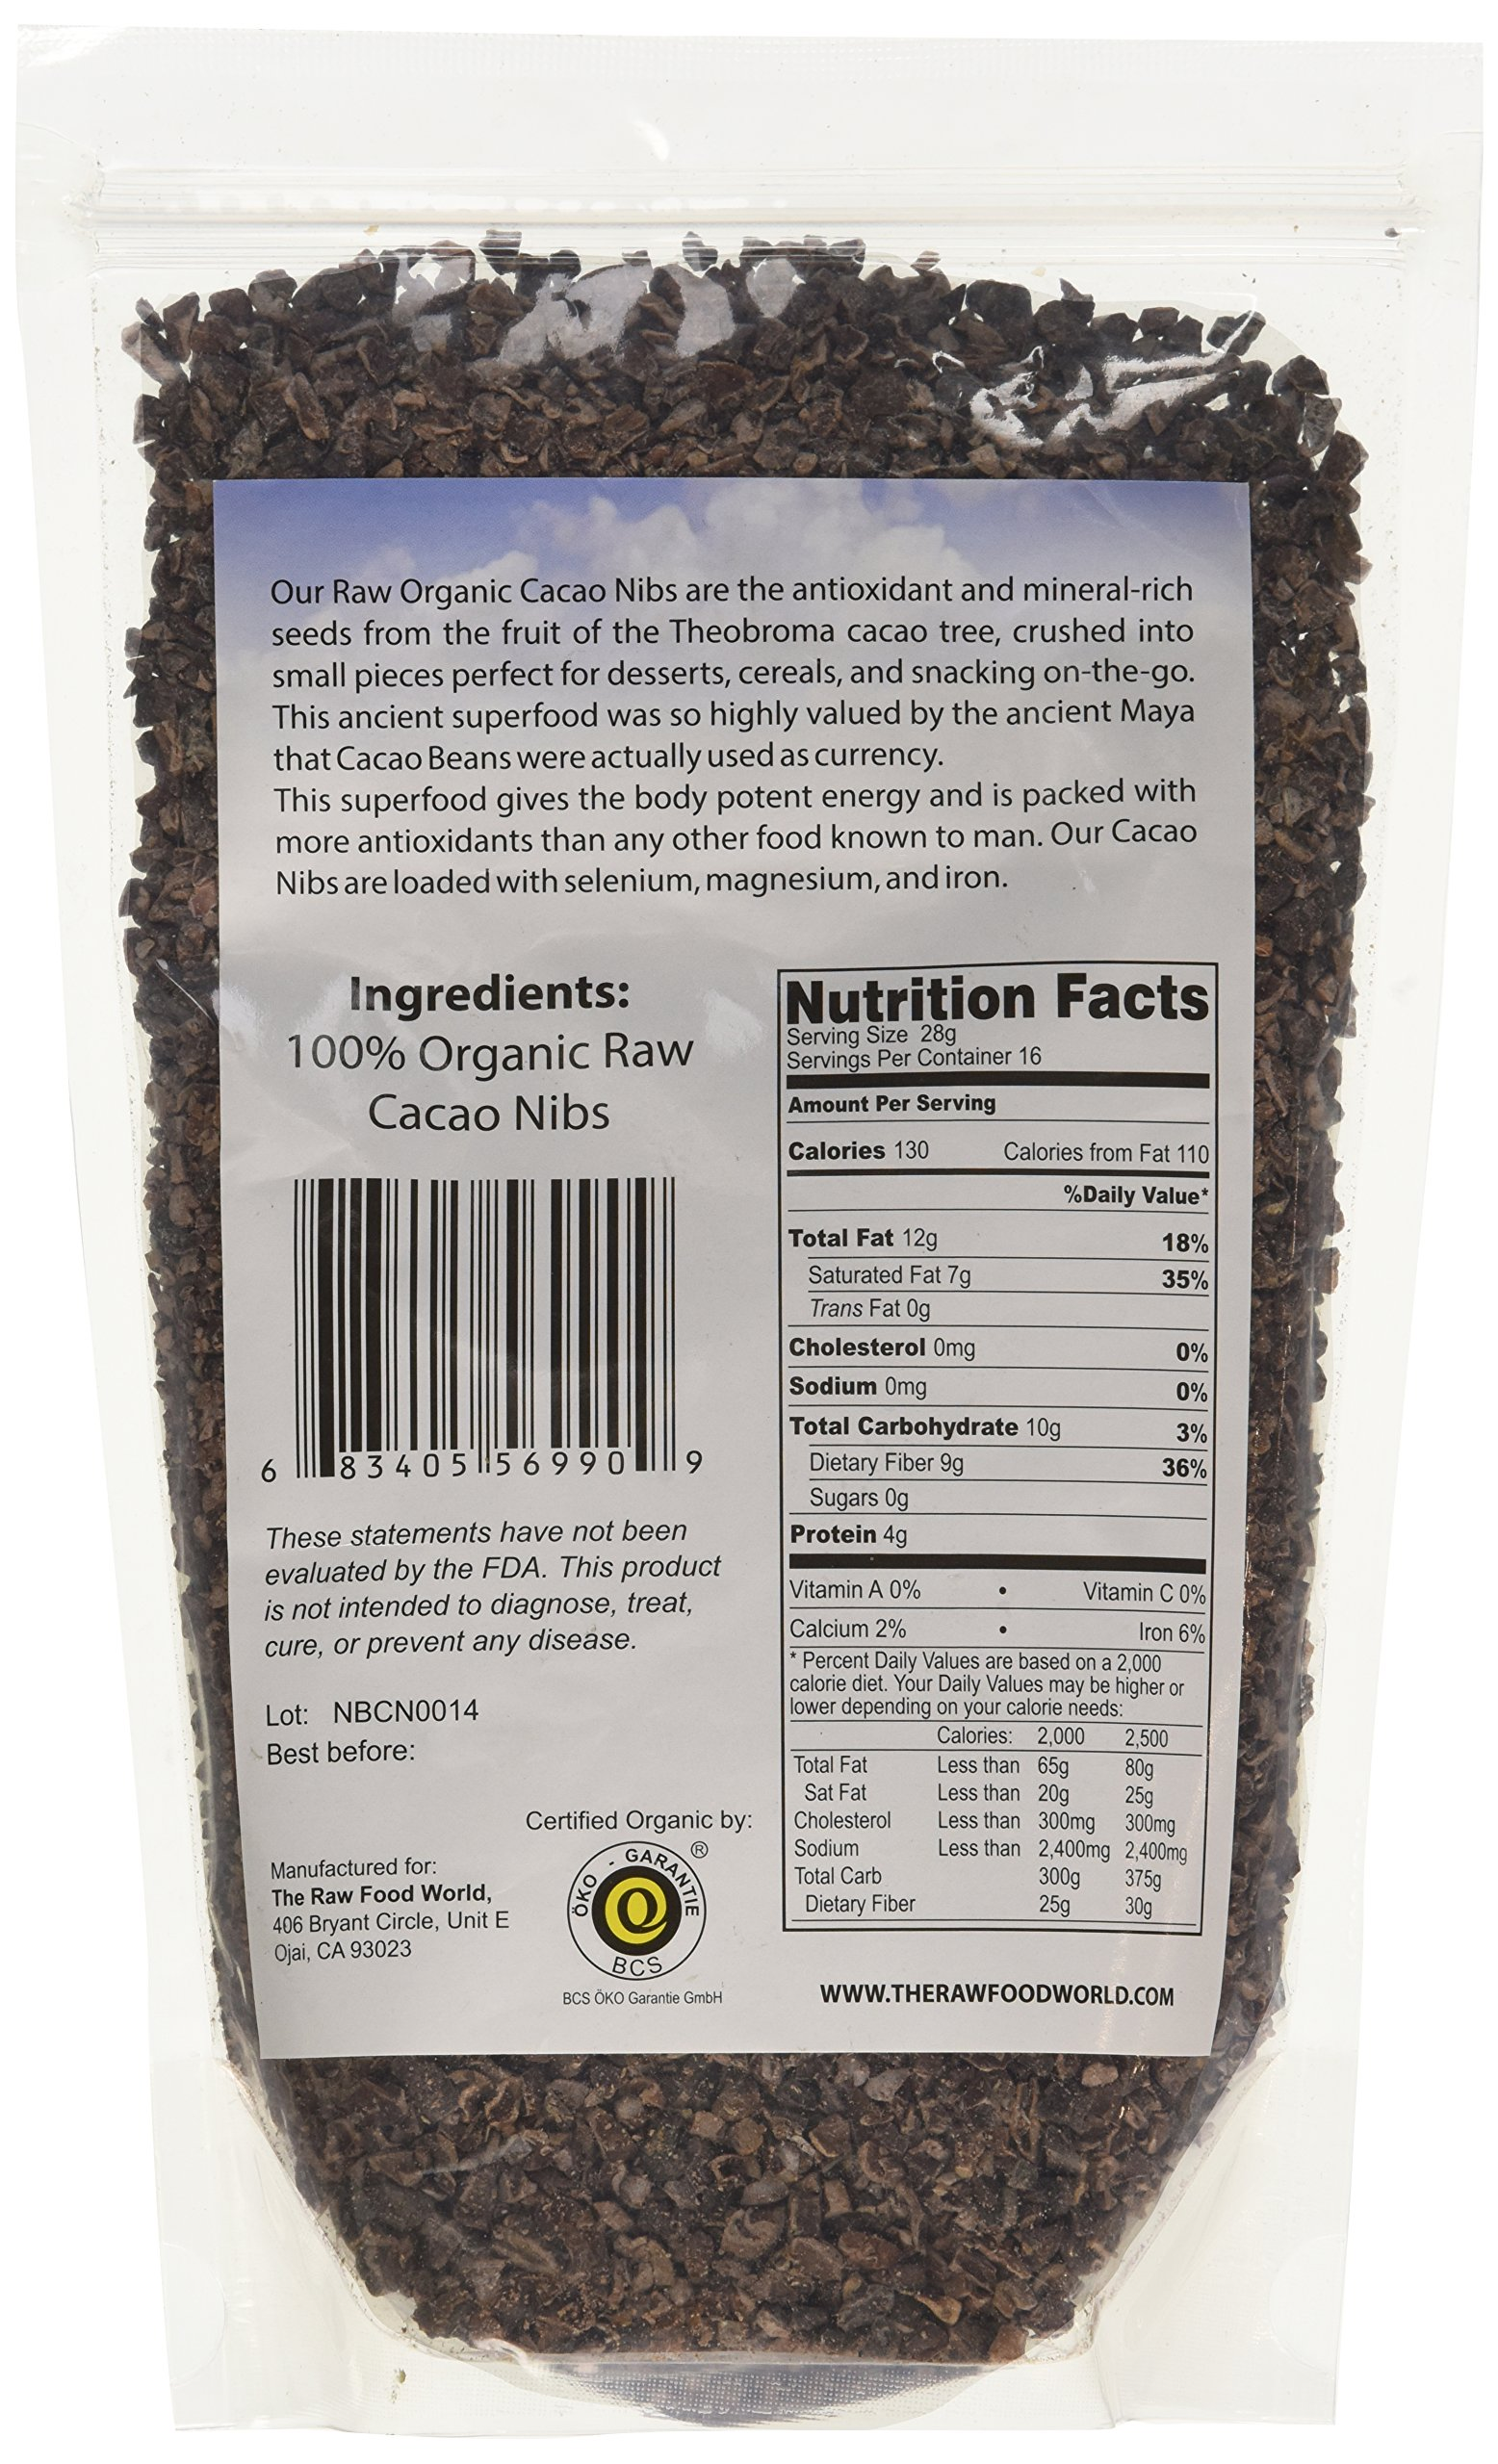 Raw Organic Cacao Nibs, 16oz, The Raw Food World